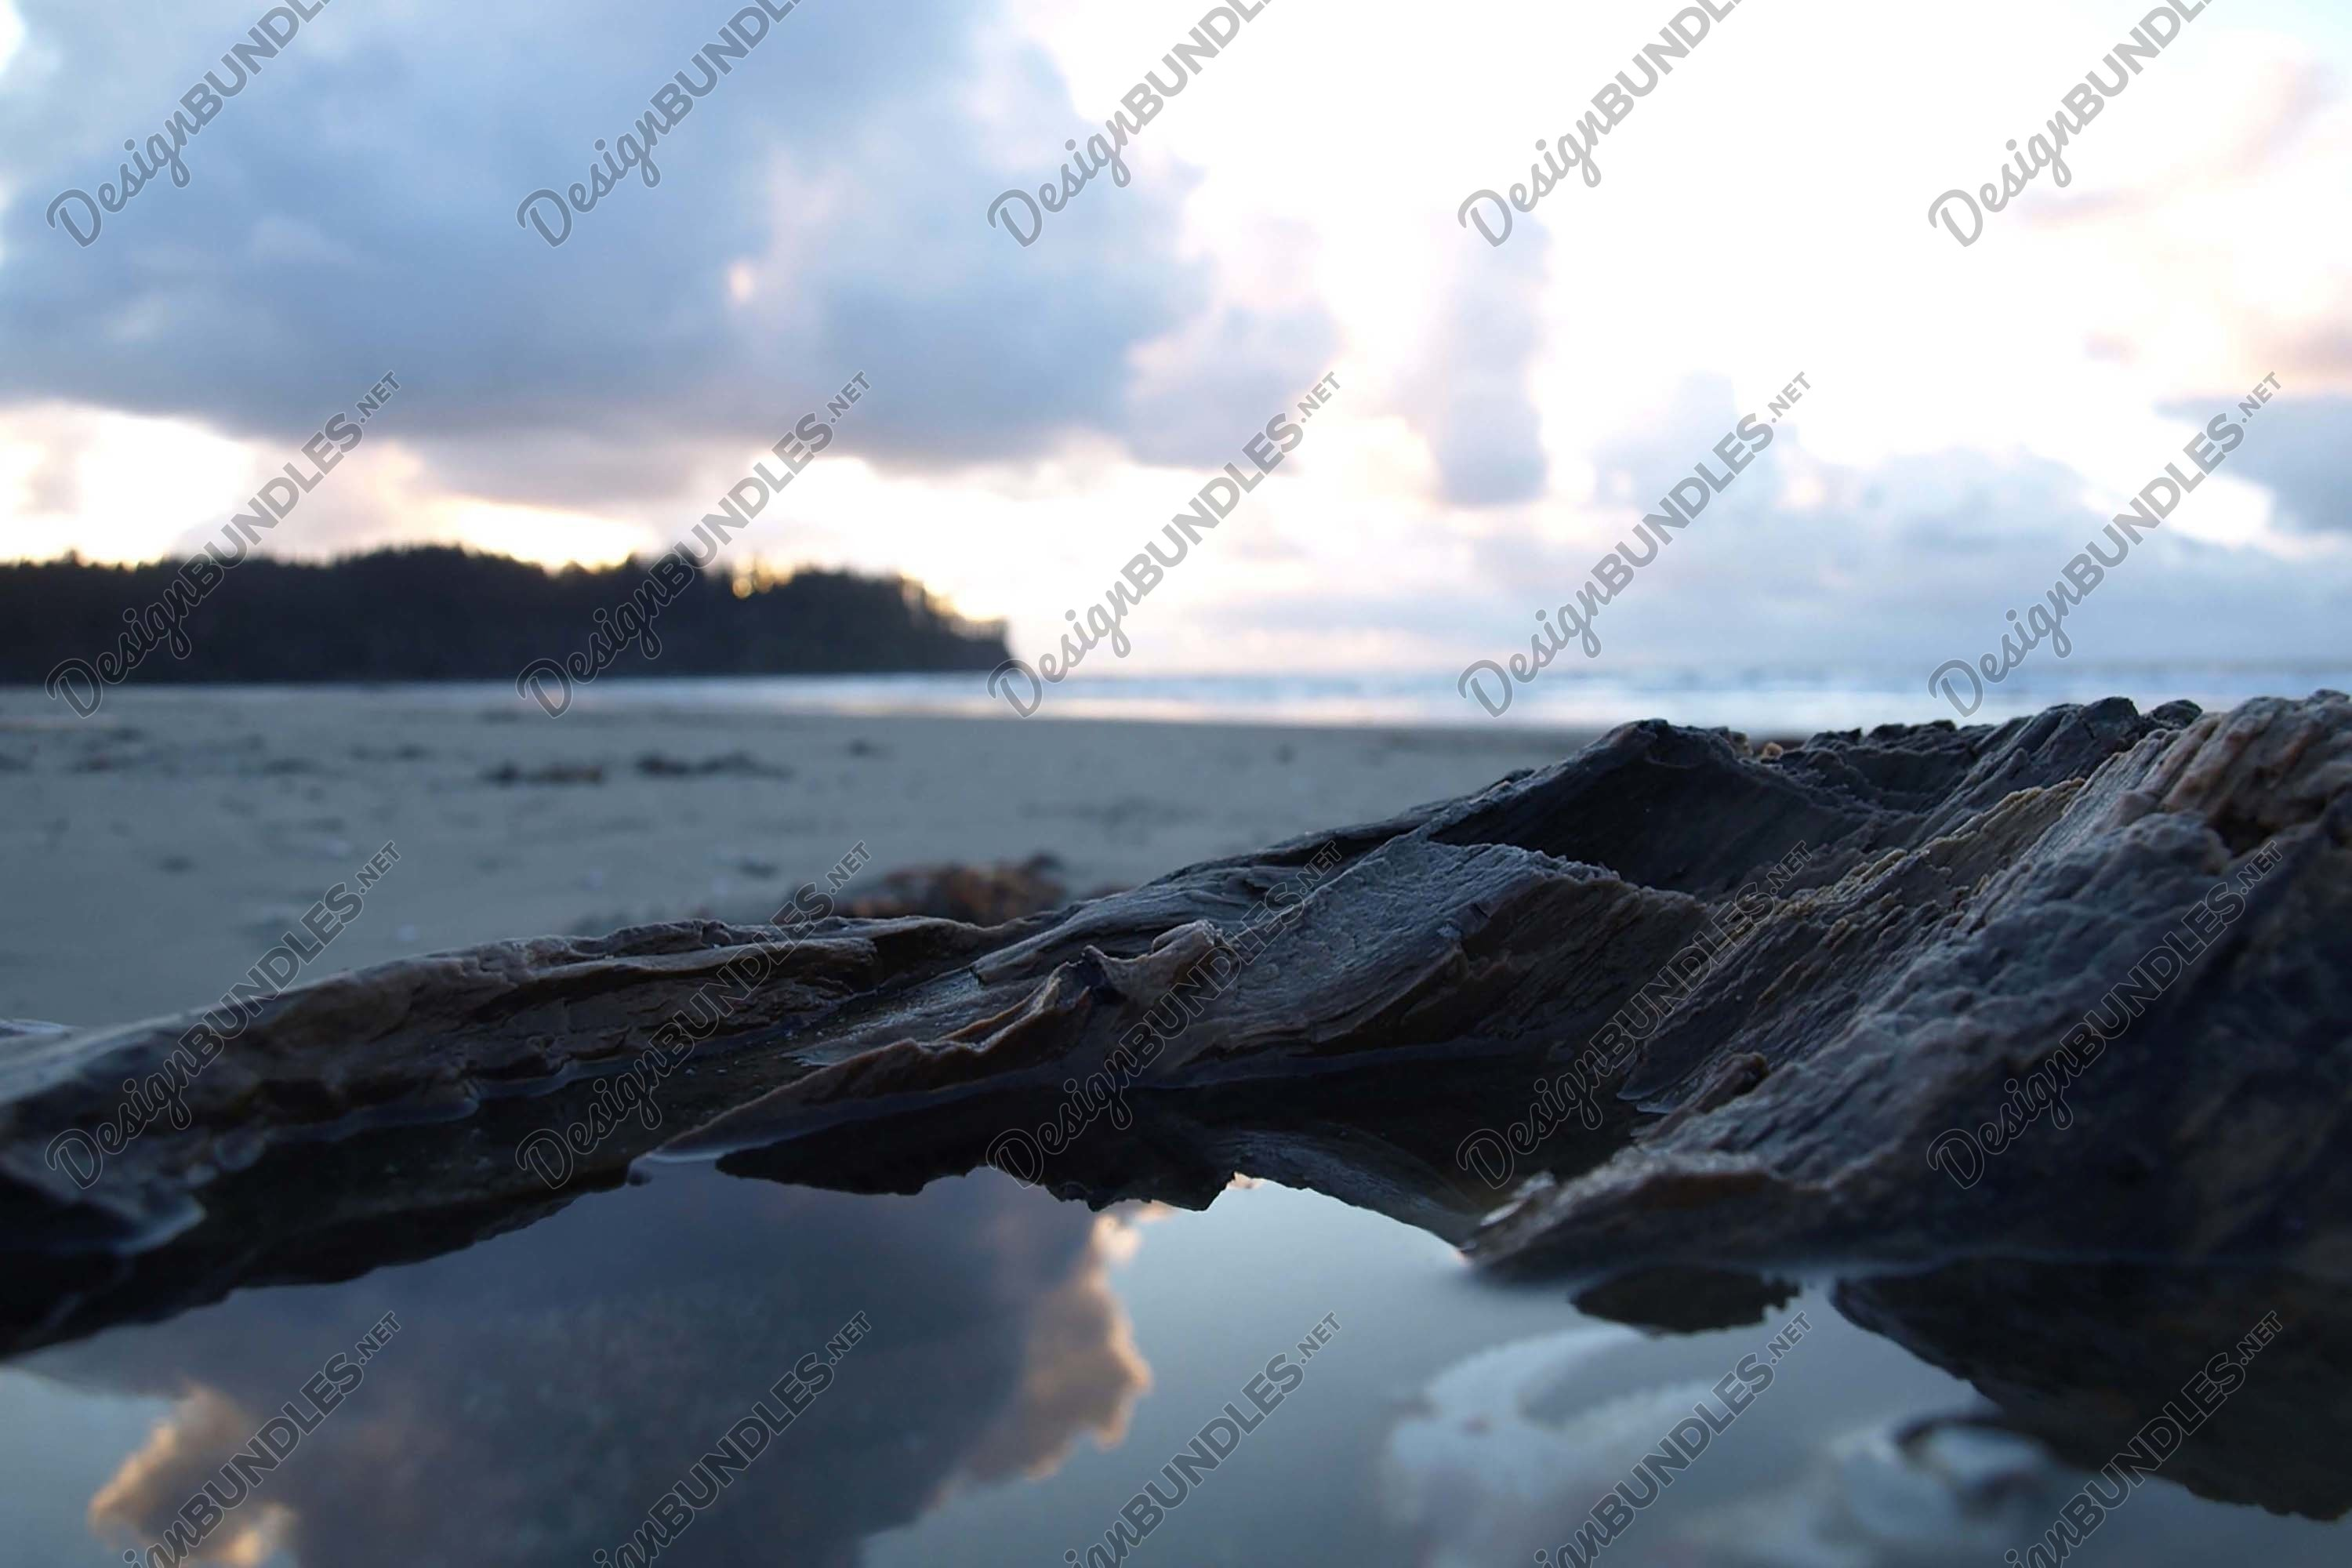 Stock Photo - Scenic View Of Sea Against Sky example image 1